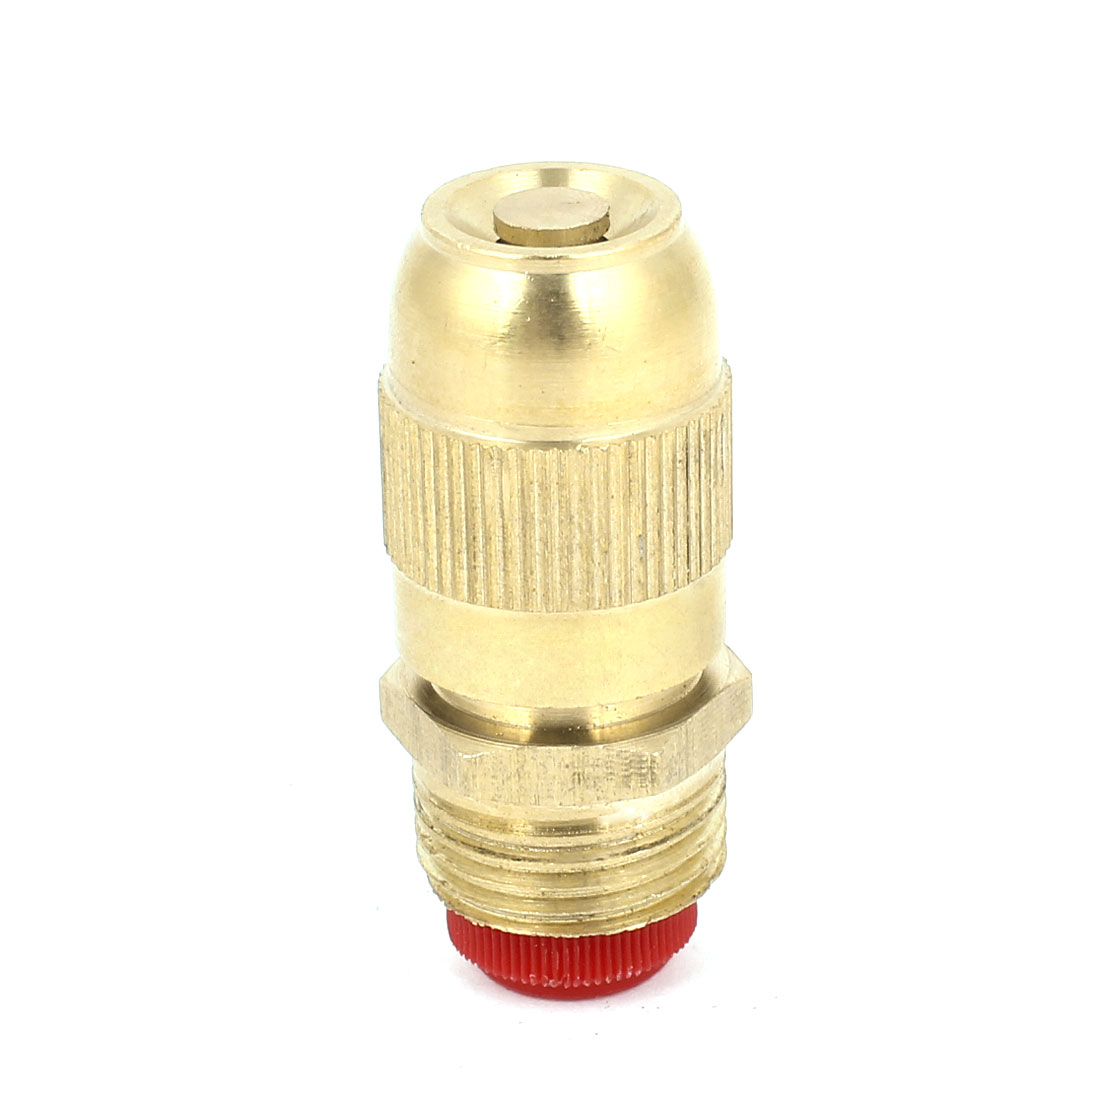 Cooling Dust Cleaning 20mm Male Thread Water Mist Spray Head Nozzle Brass Tone